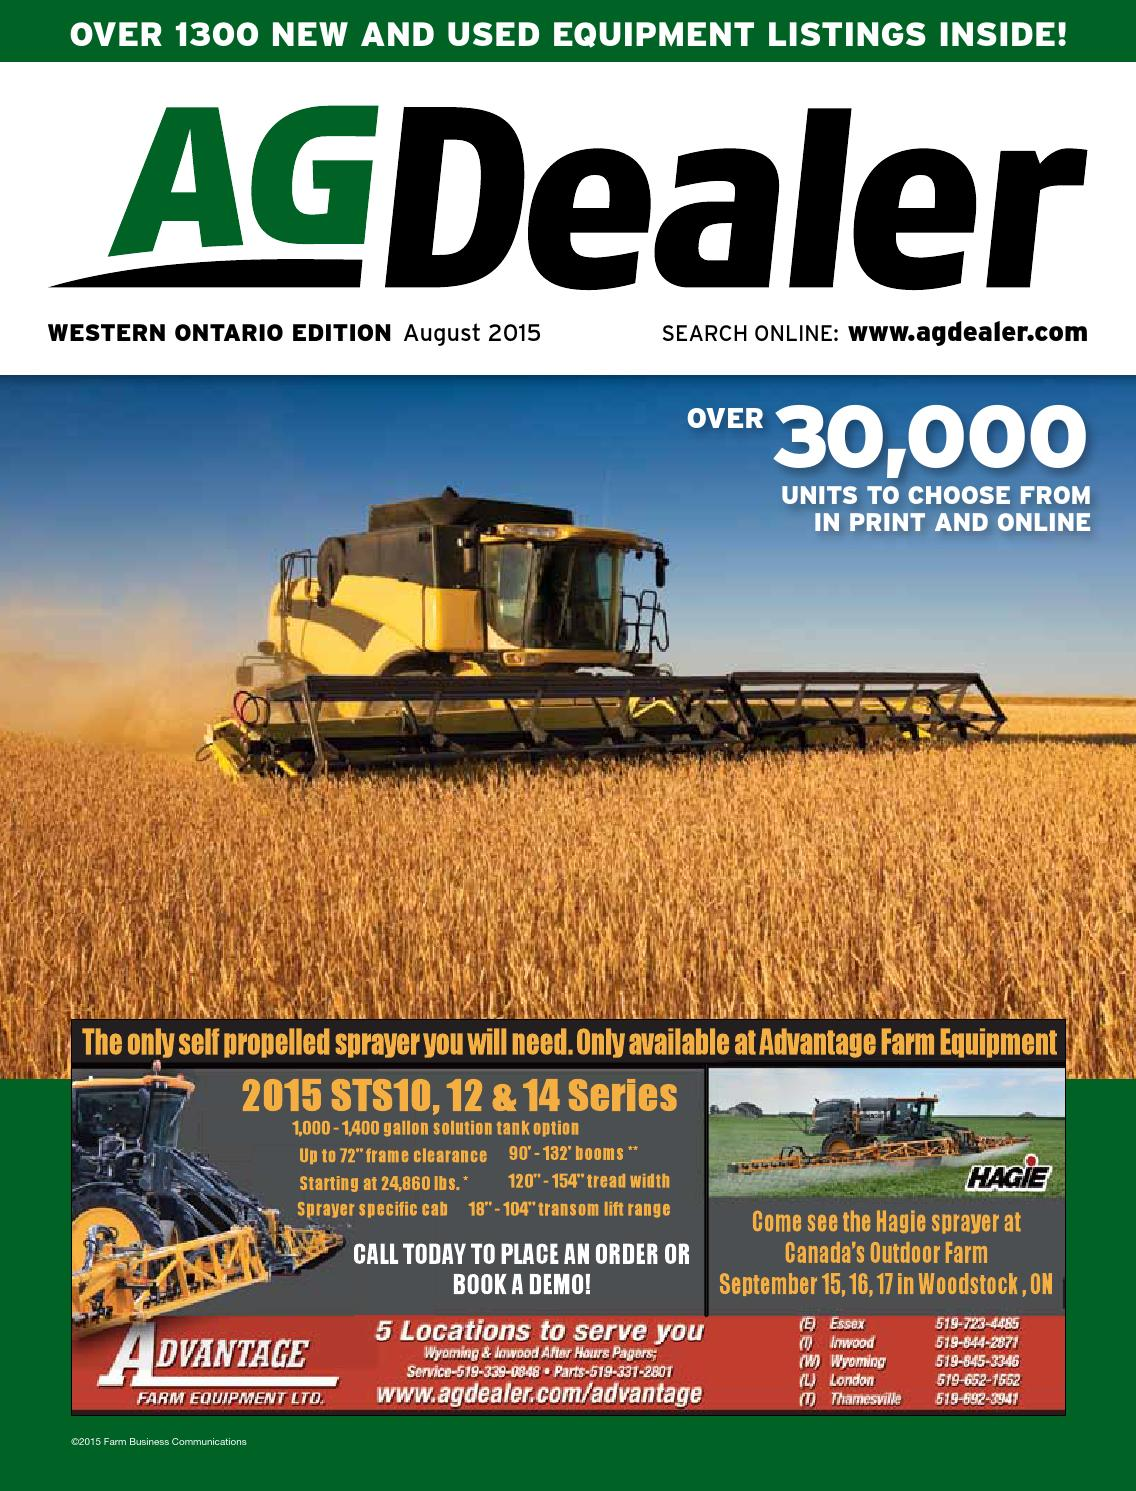 AGDealer Western Ontario Edition, August 2015 by Farm Business  Communications - issuu